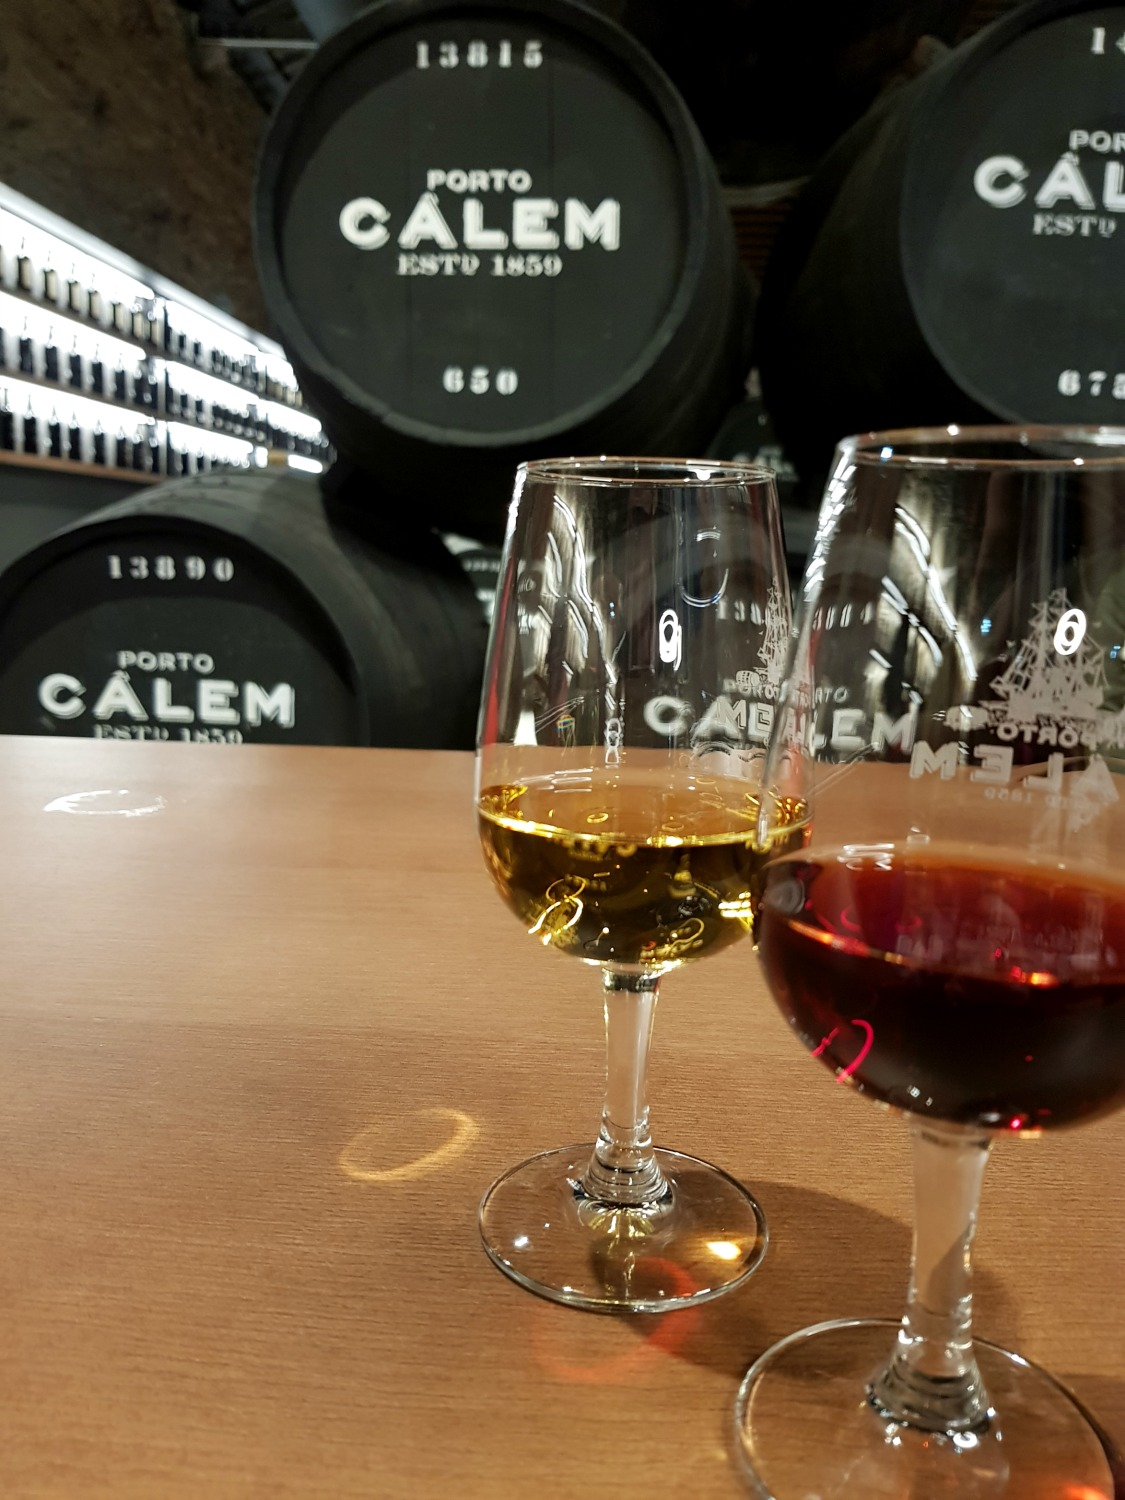 Port tasting at Caves Calem in Porto - my top 37 things to do in Porto with kids, discovering the family-friendly side to this lovely city in north Portugal